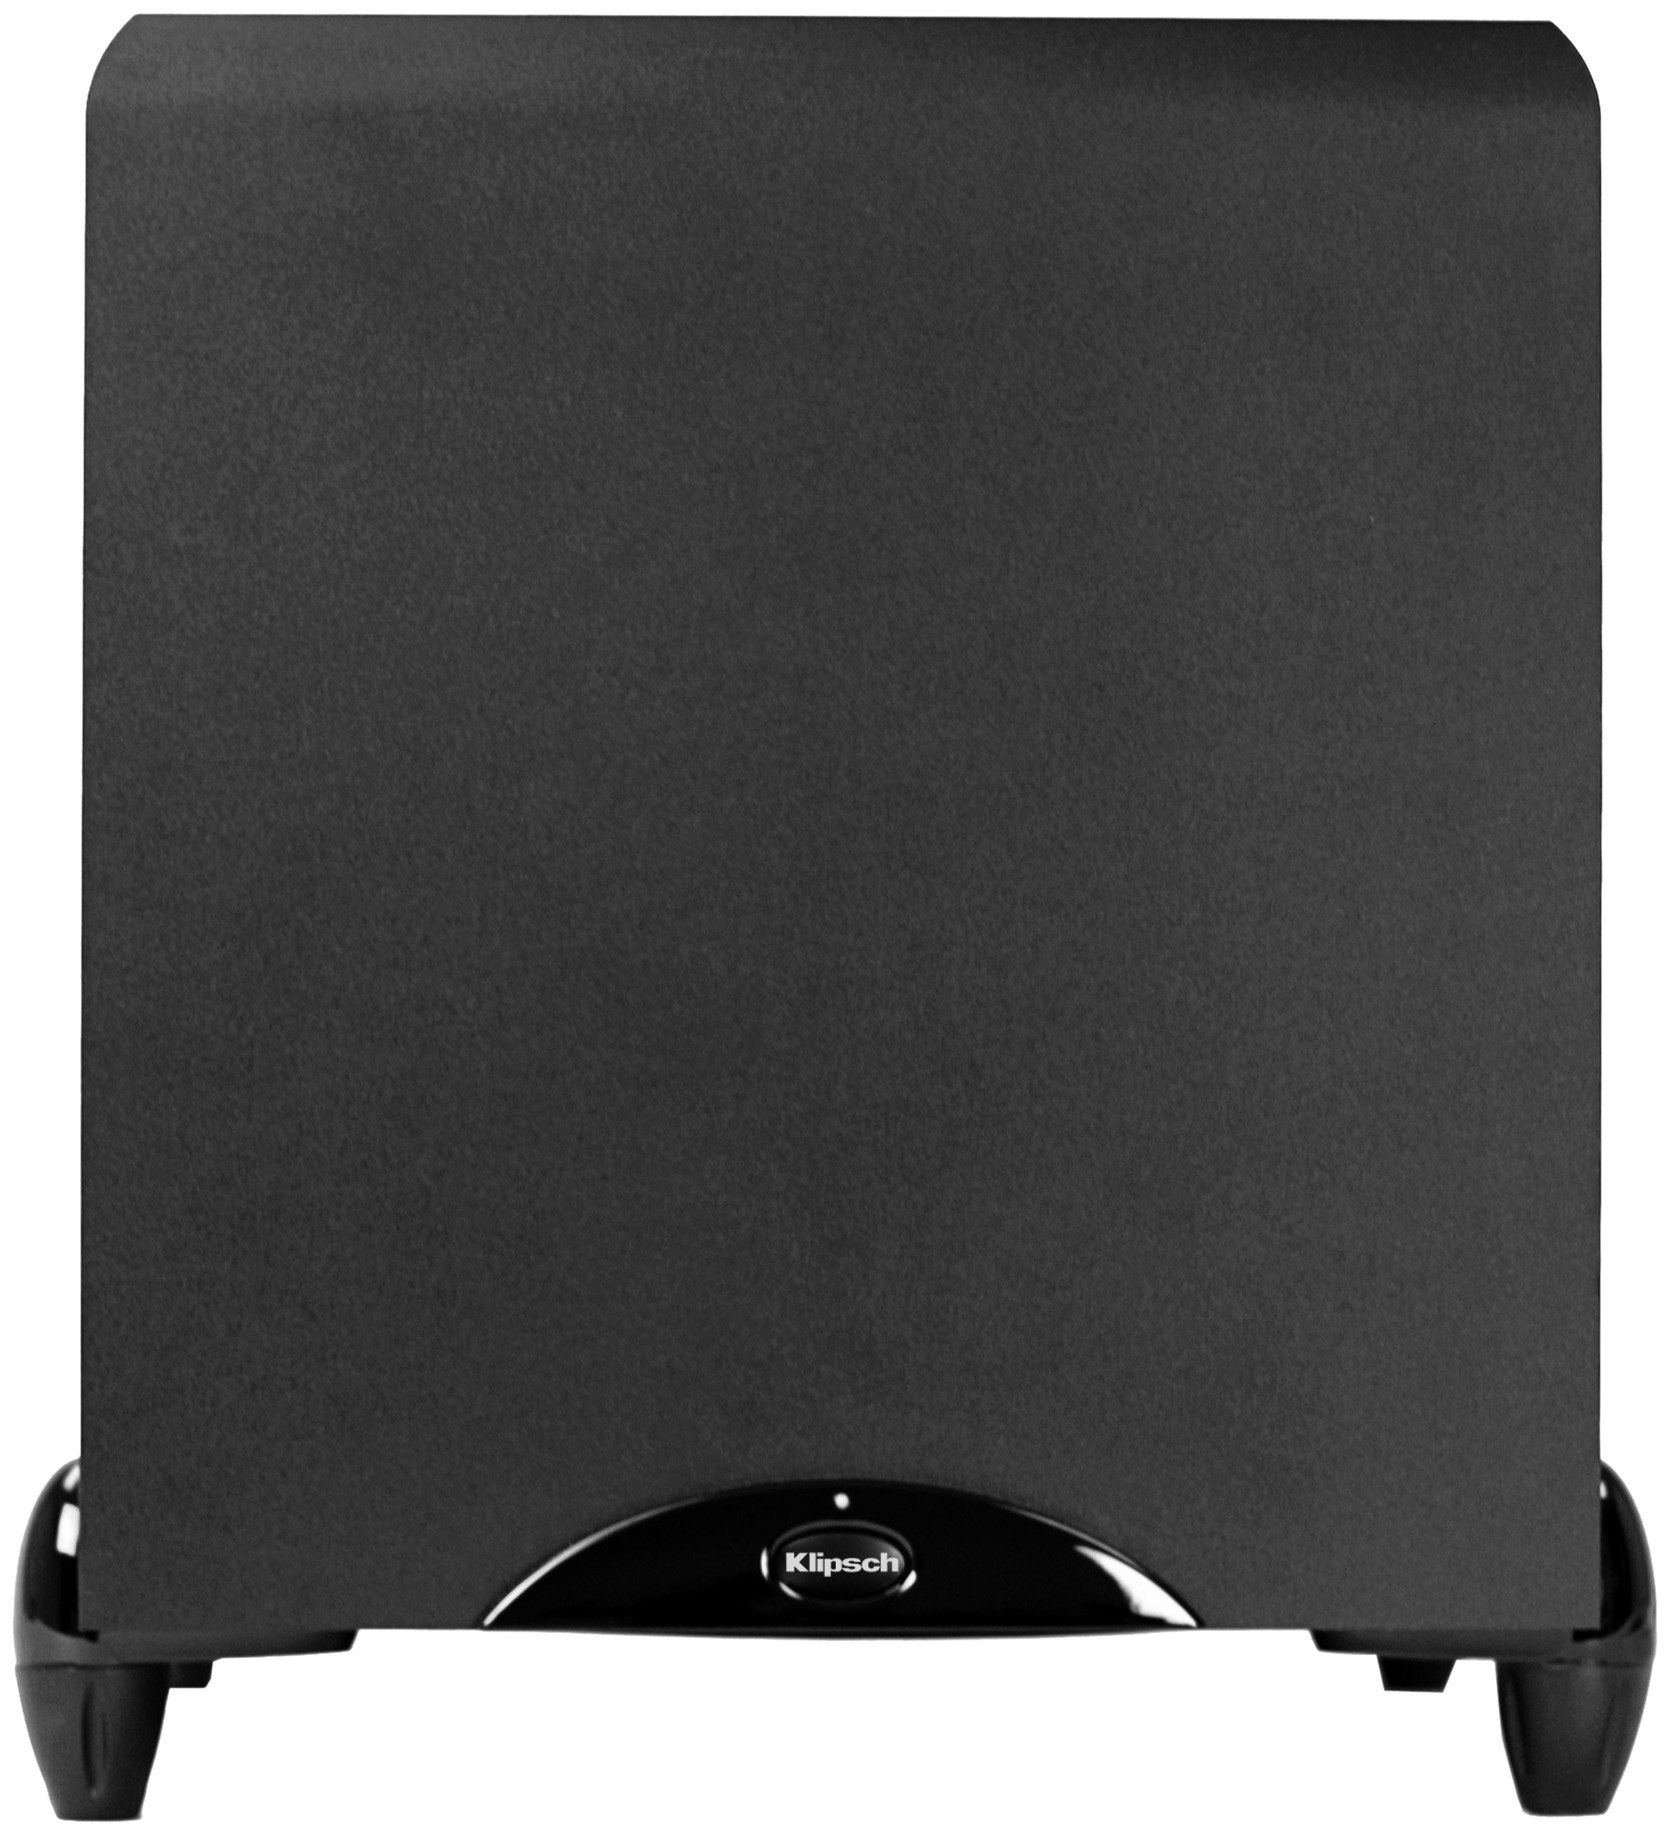 Klipsch Sub-12HG Synergy Series 12-Inch 300-Watt Subwoofer with High Gloss Trim (Black) by Klipsch